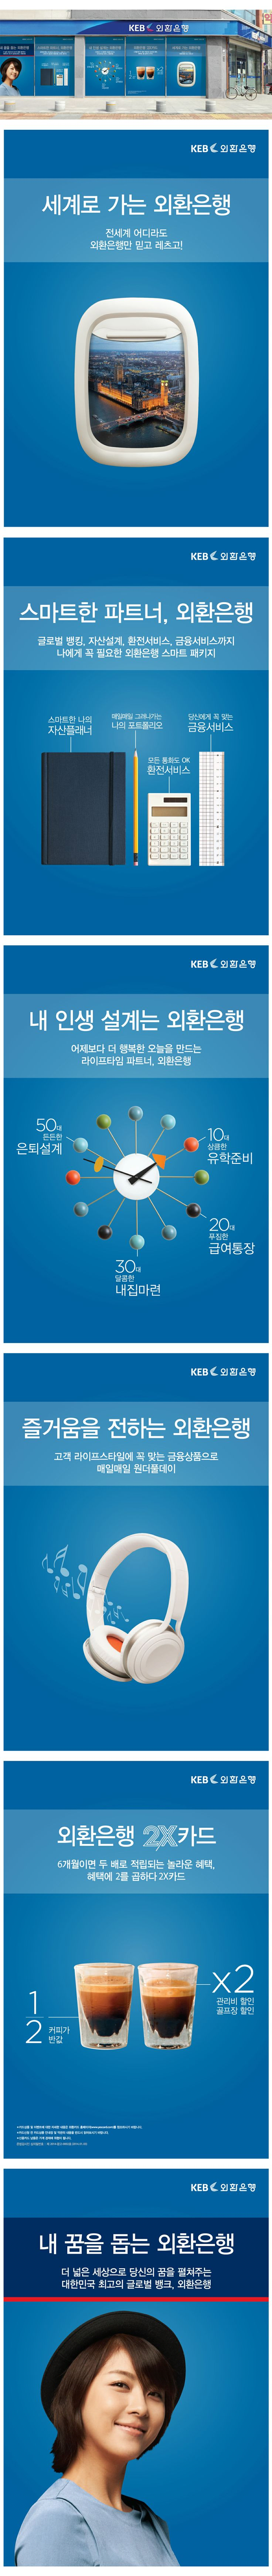 Our ad design project for KEB(Korea Exchange Bank) with Service Design based LIFE-INFORGRAPHIC concept.